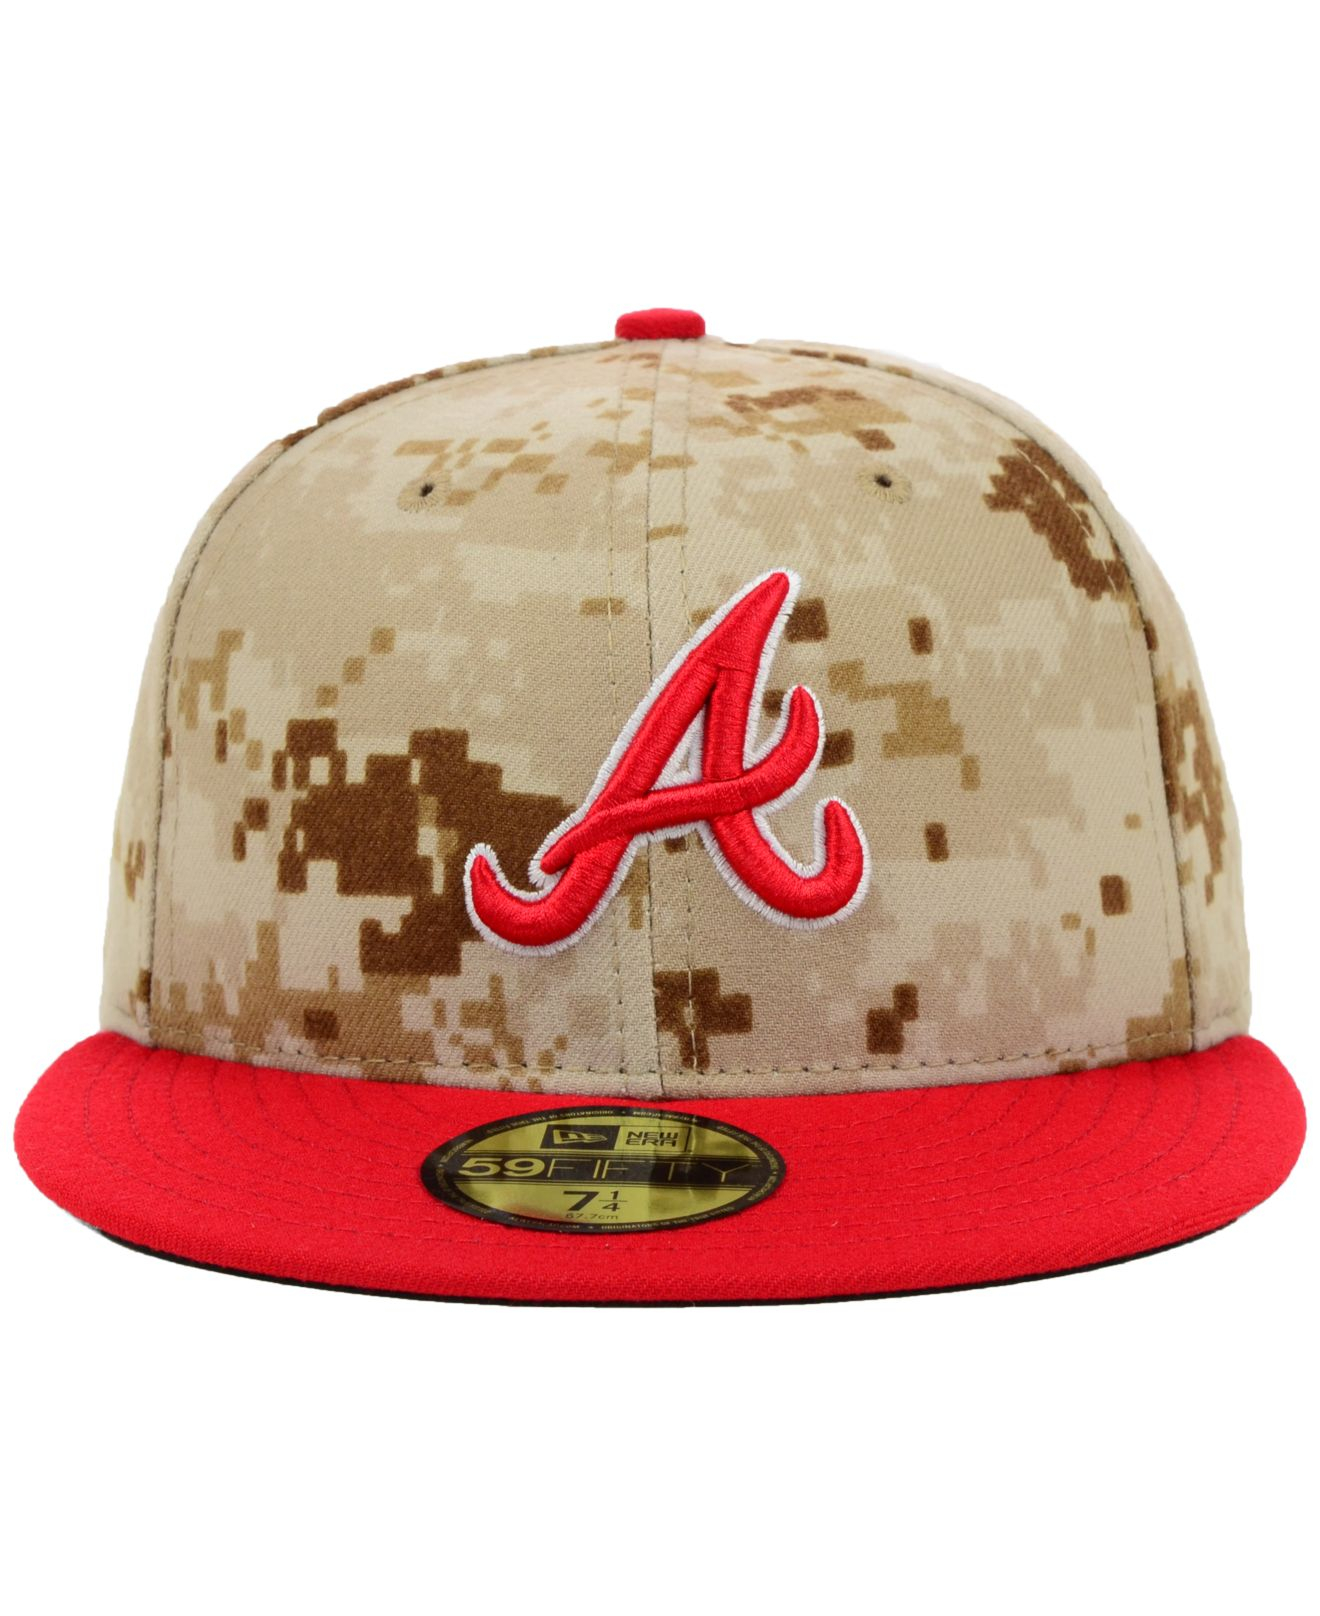 ... usa lyst ktz atlanta braves mlb 2014 memorial day stars and stripes  59fifty cap in green ce65f843cb48